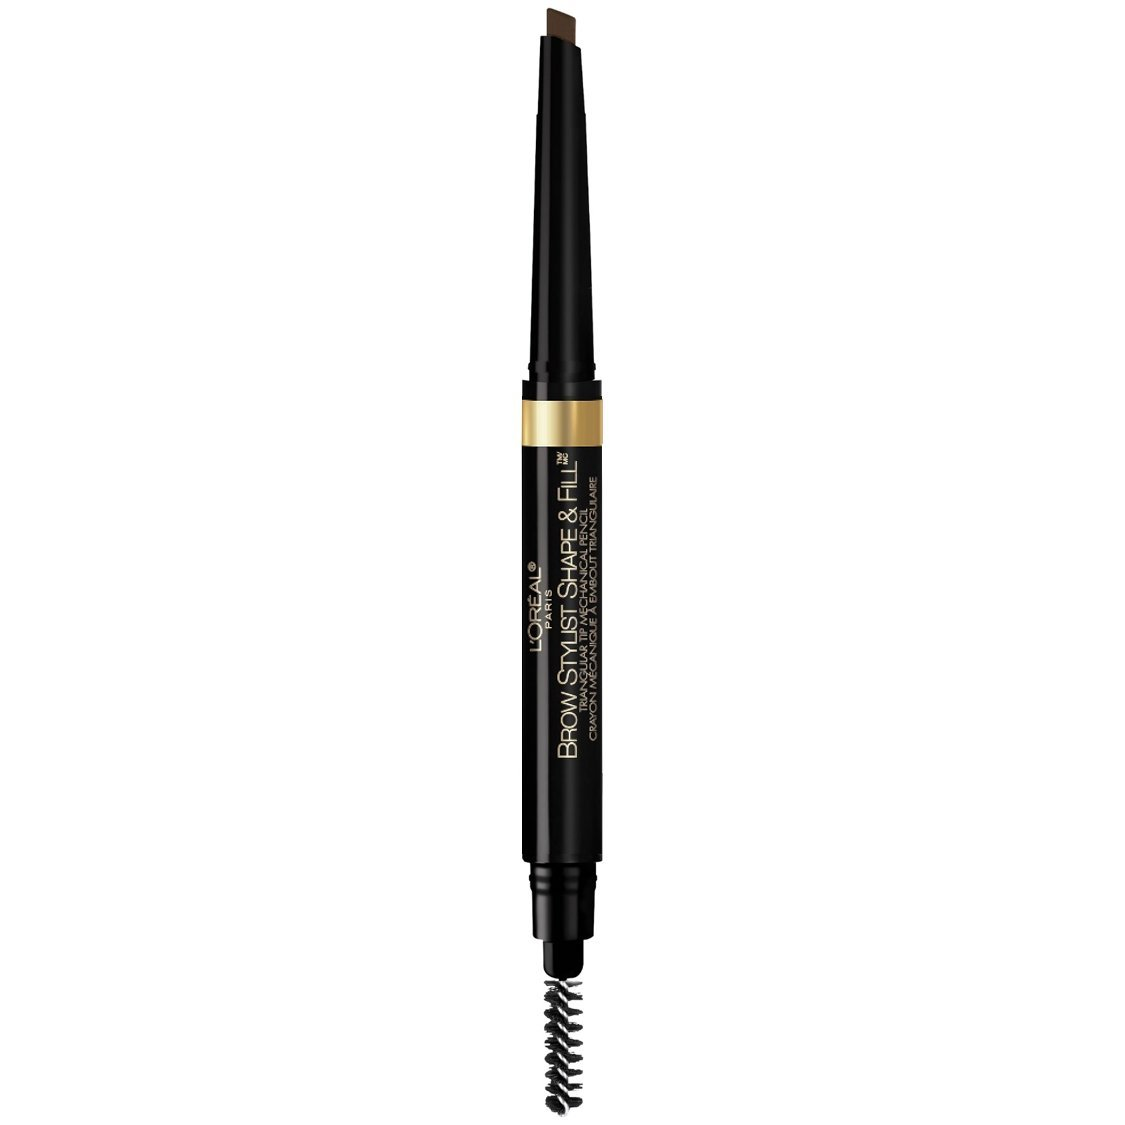 L'Oréal Paris Makeup Brow Stylist Shape & Fill Mechanical Eye Brow Makeup Pencil, Dark Brunette, 0.008 oz.